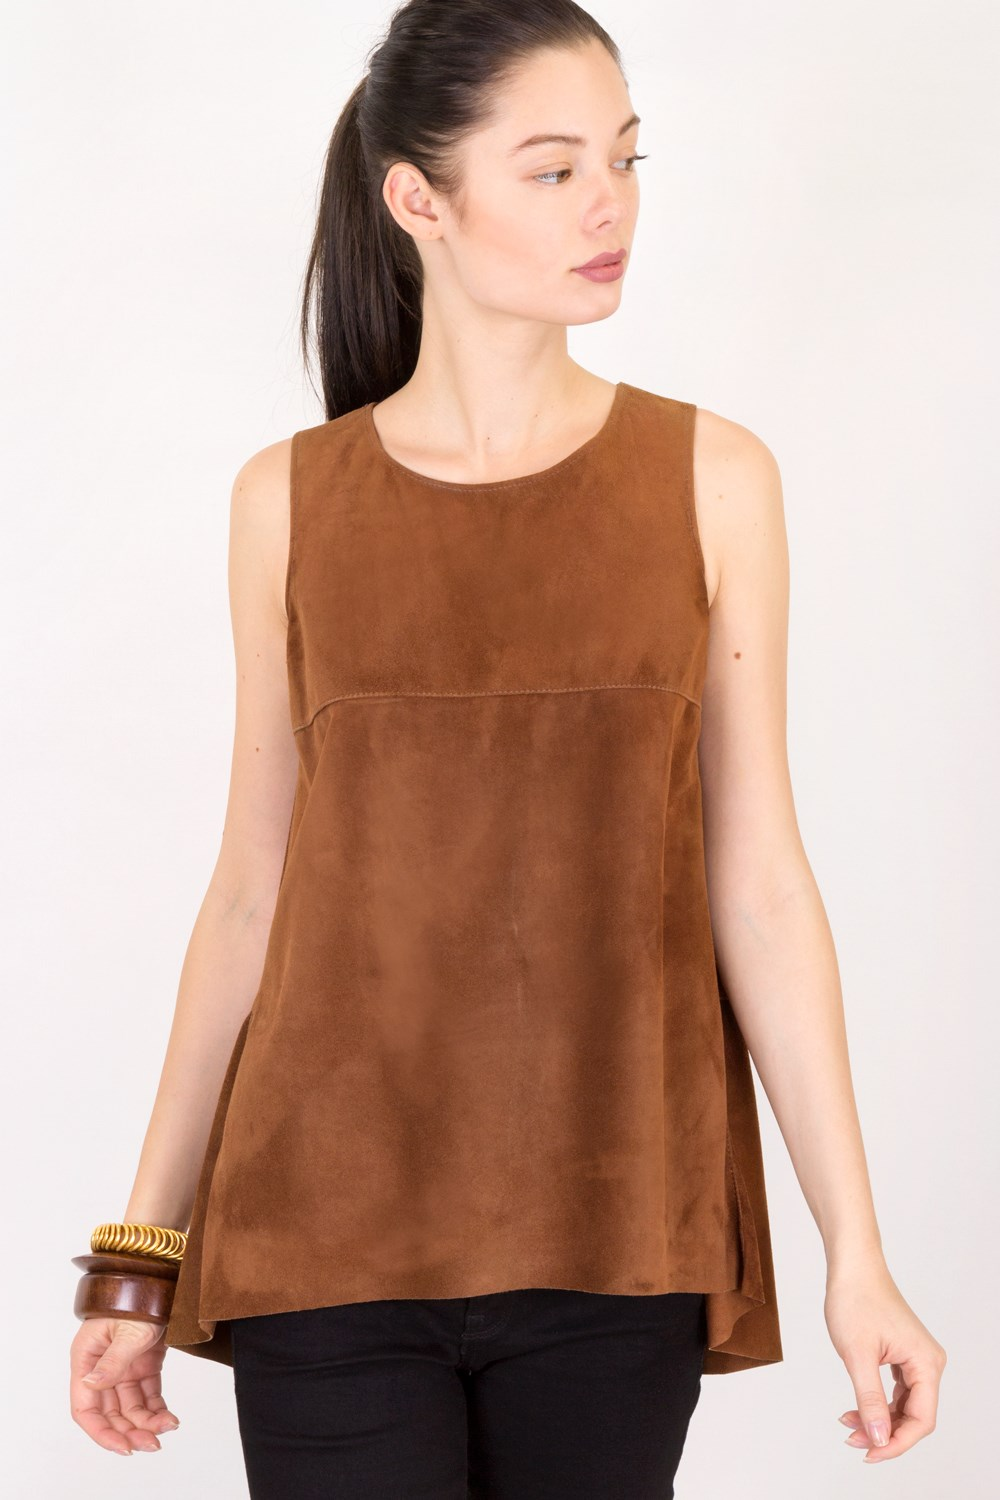 2494aca797d0cb Tan Sleeveless Suede Blouse   Size  S - Fit  True to size ...